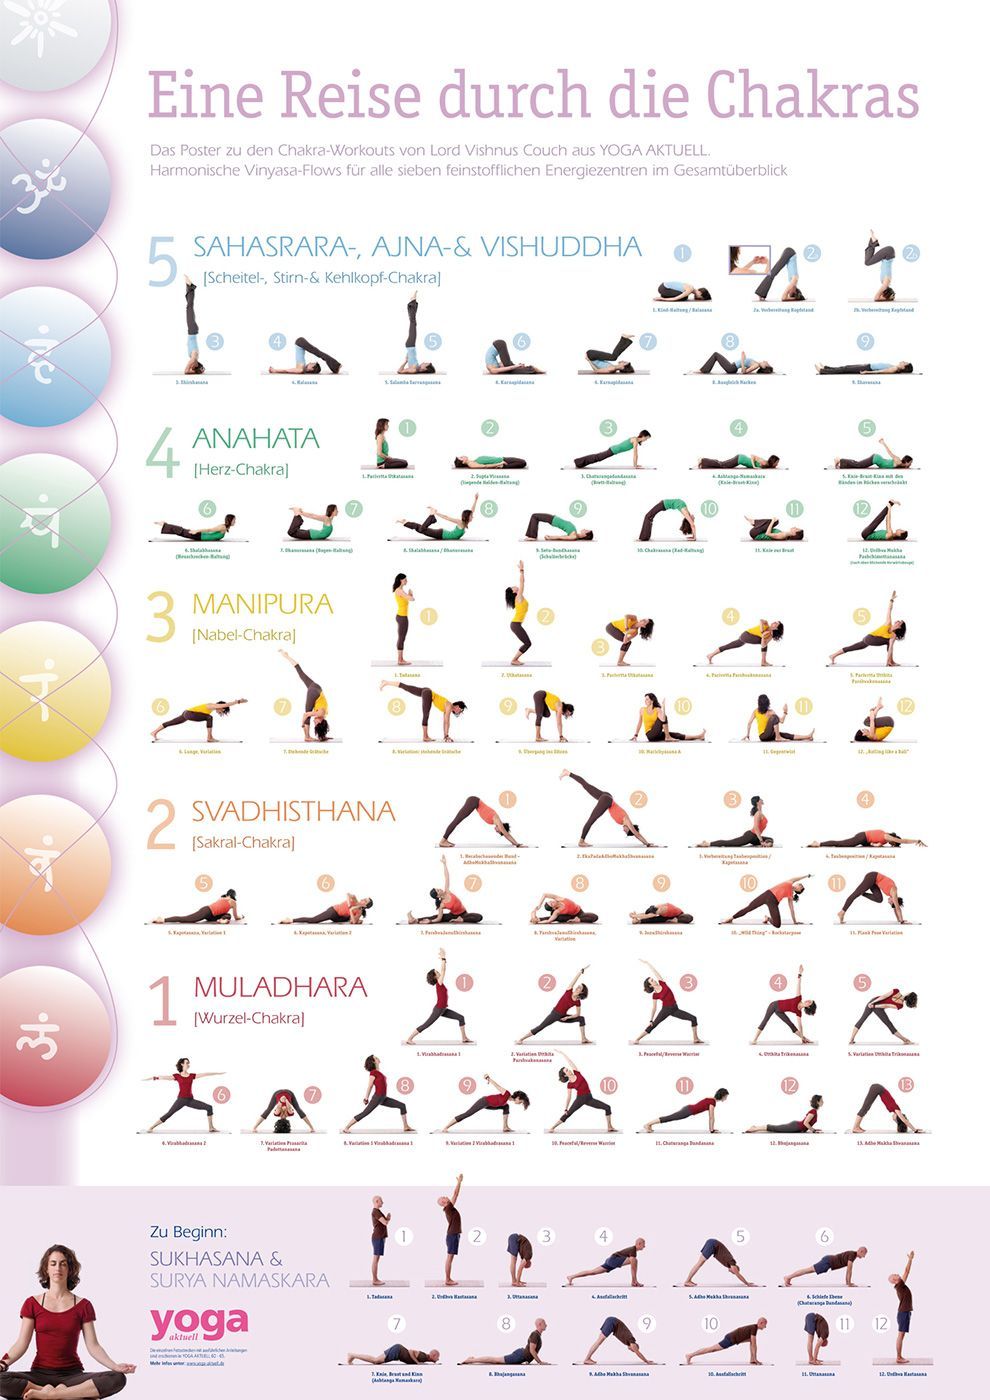 Pin by Jasmine Gouveia on Chakras  Workout posters, Ashtanga yoga